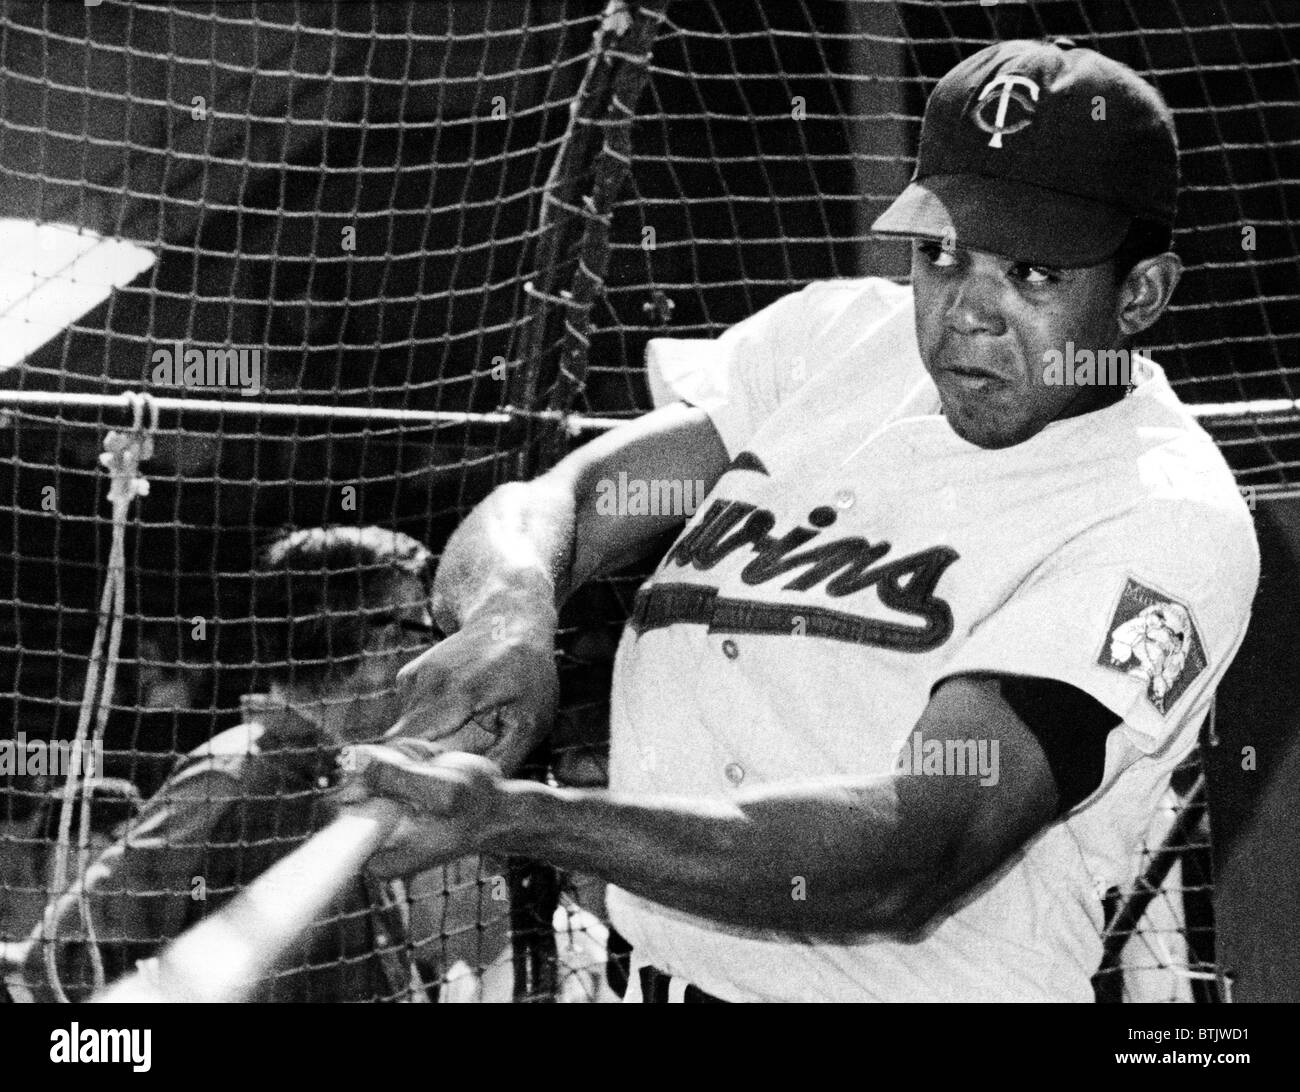 Image result for tony oliva images